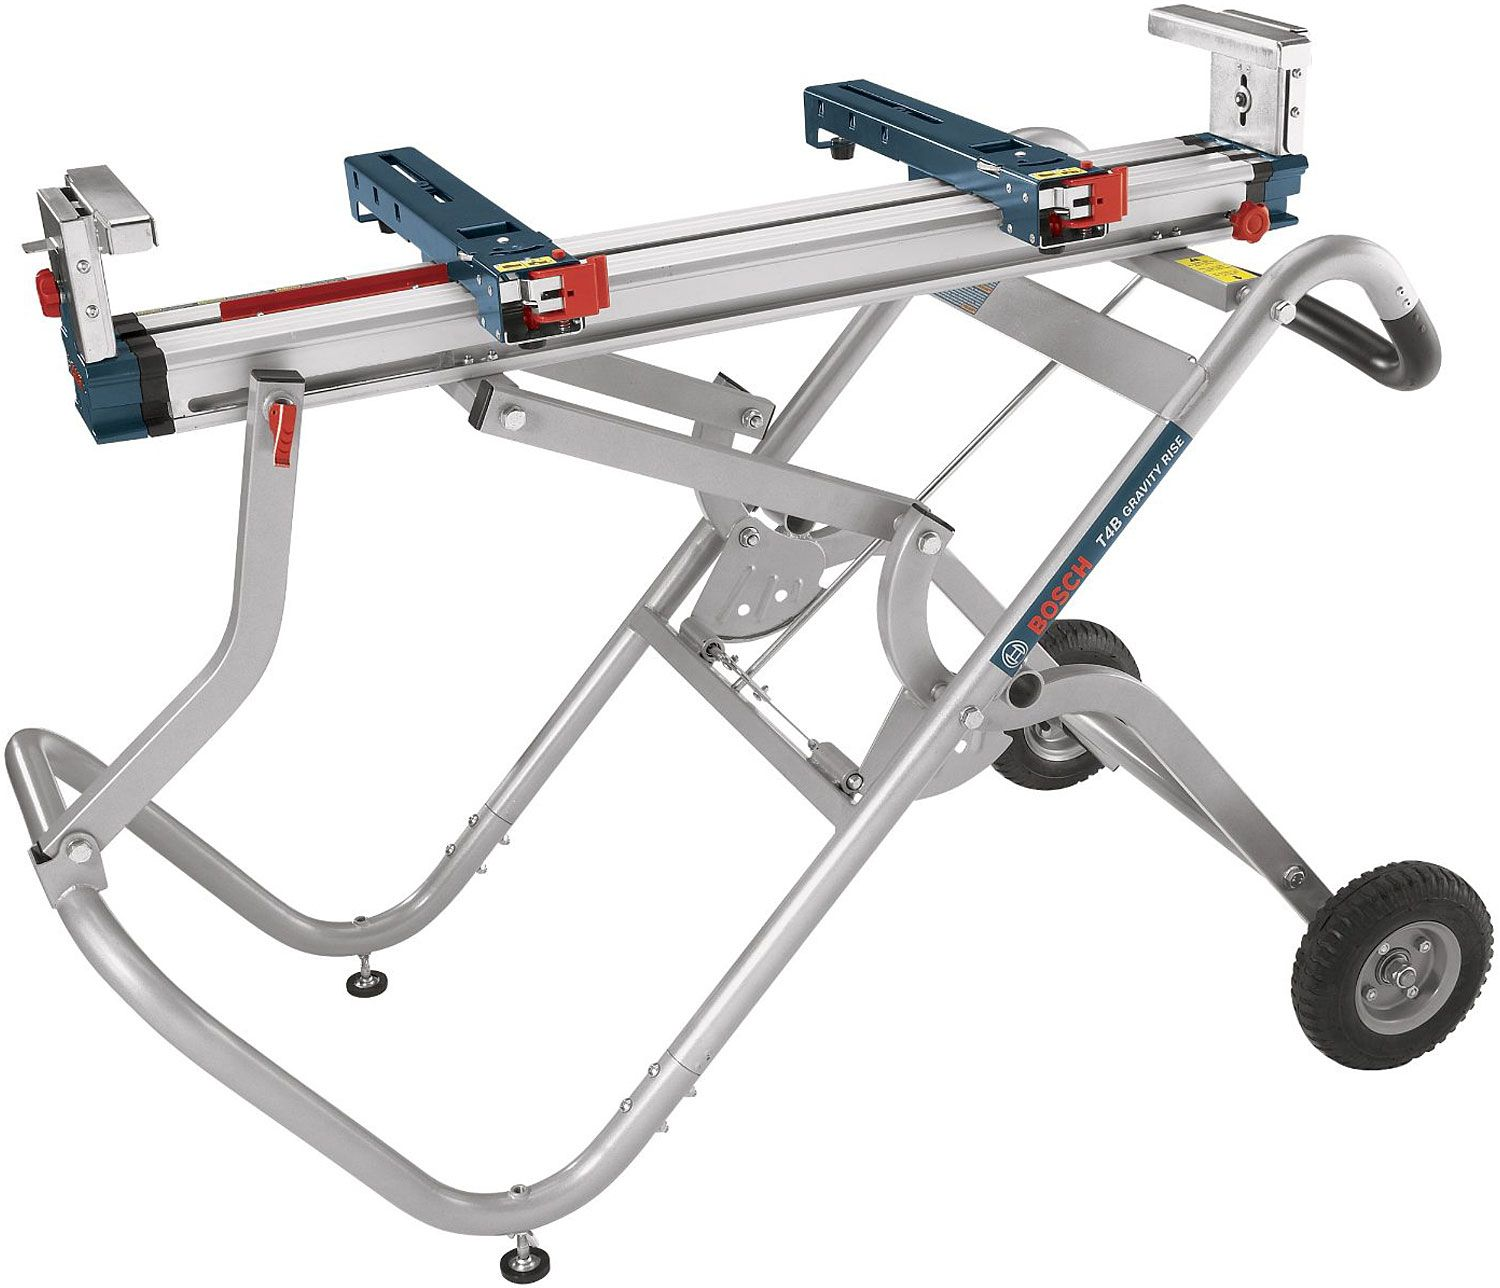 Bosch Tools Gravity Rise Wheeled Miter Saw Stand T4b